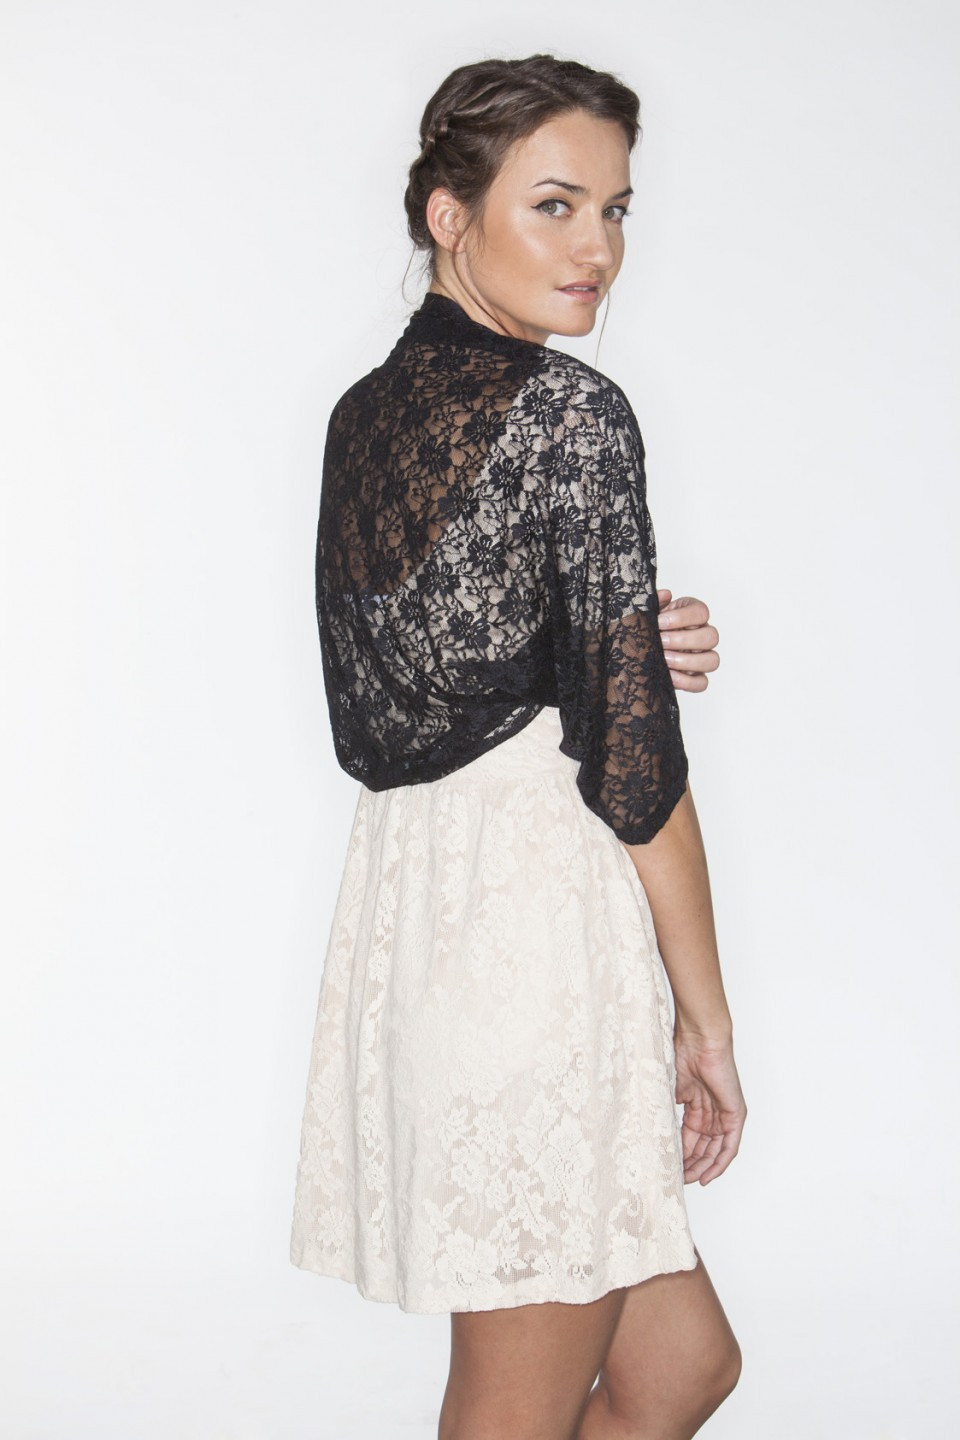 Lace Shawl Lovely Sheeebz evening Shawls & Wraps Black Lace Shawl Of Top 45 Pictures Lace Shawl